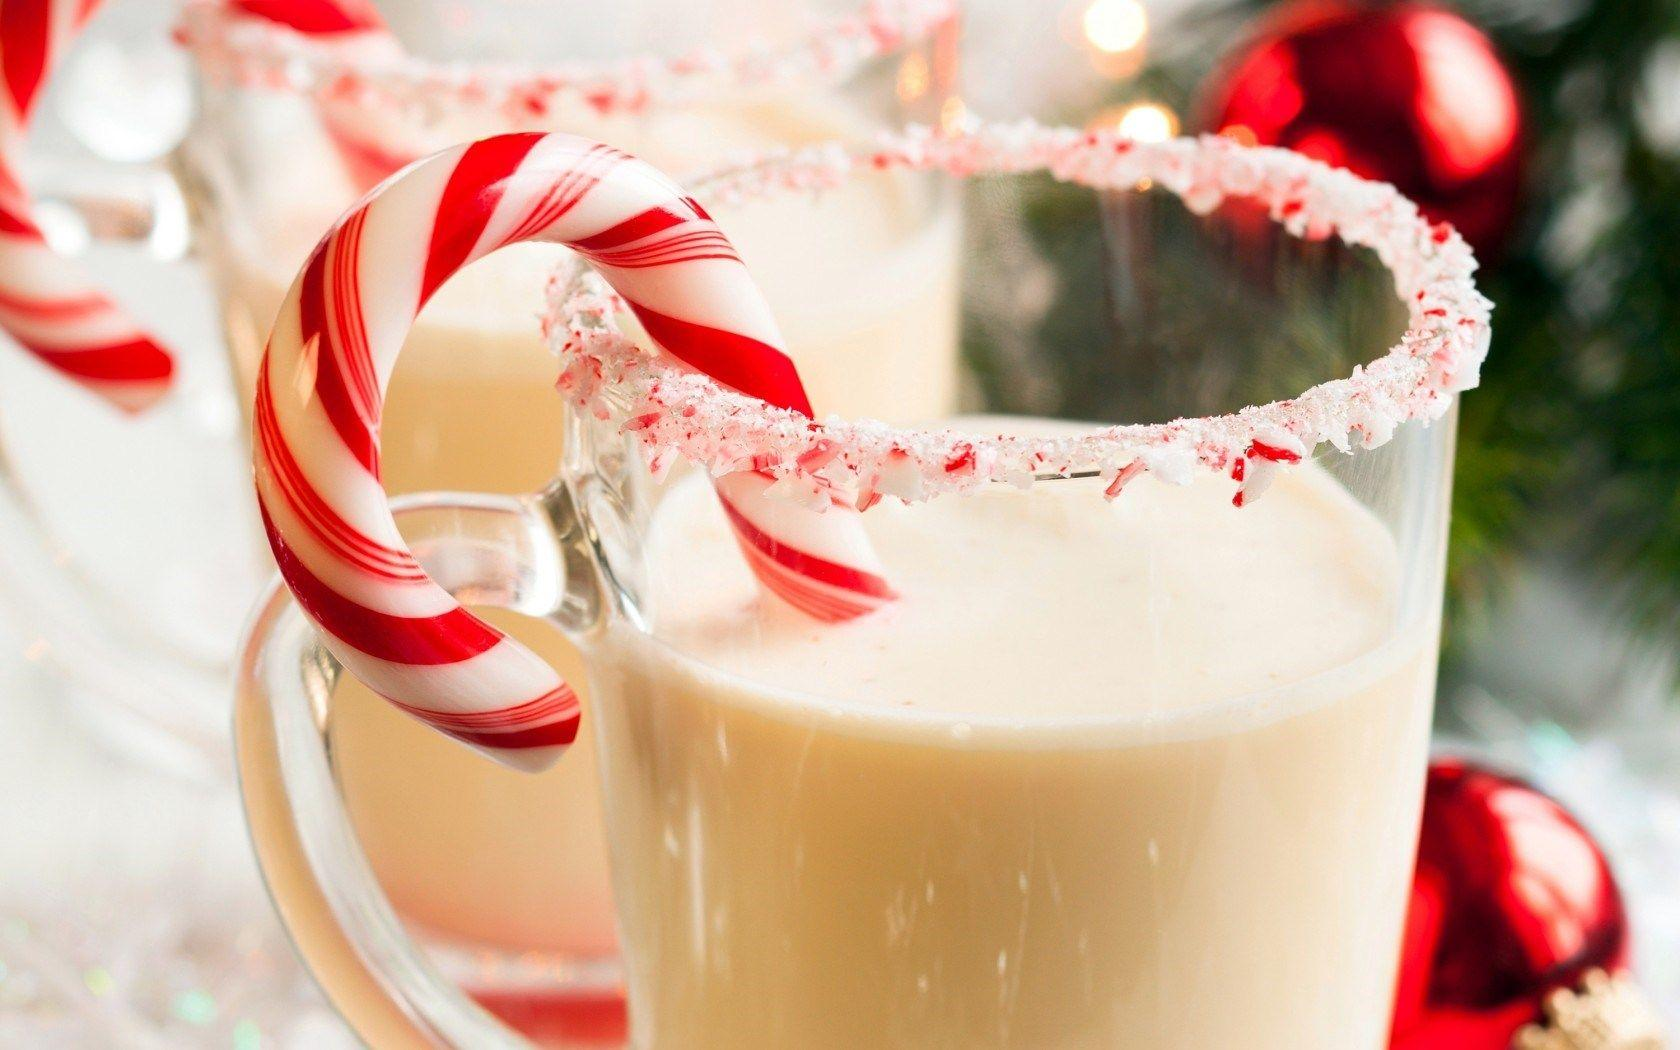 Christmas Candies wallpapers is collection of colorful Christmas